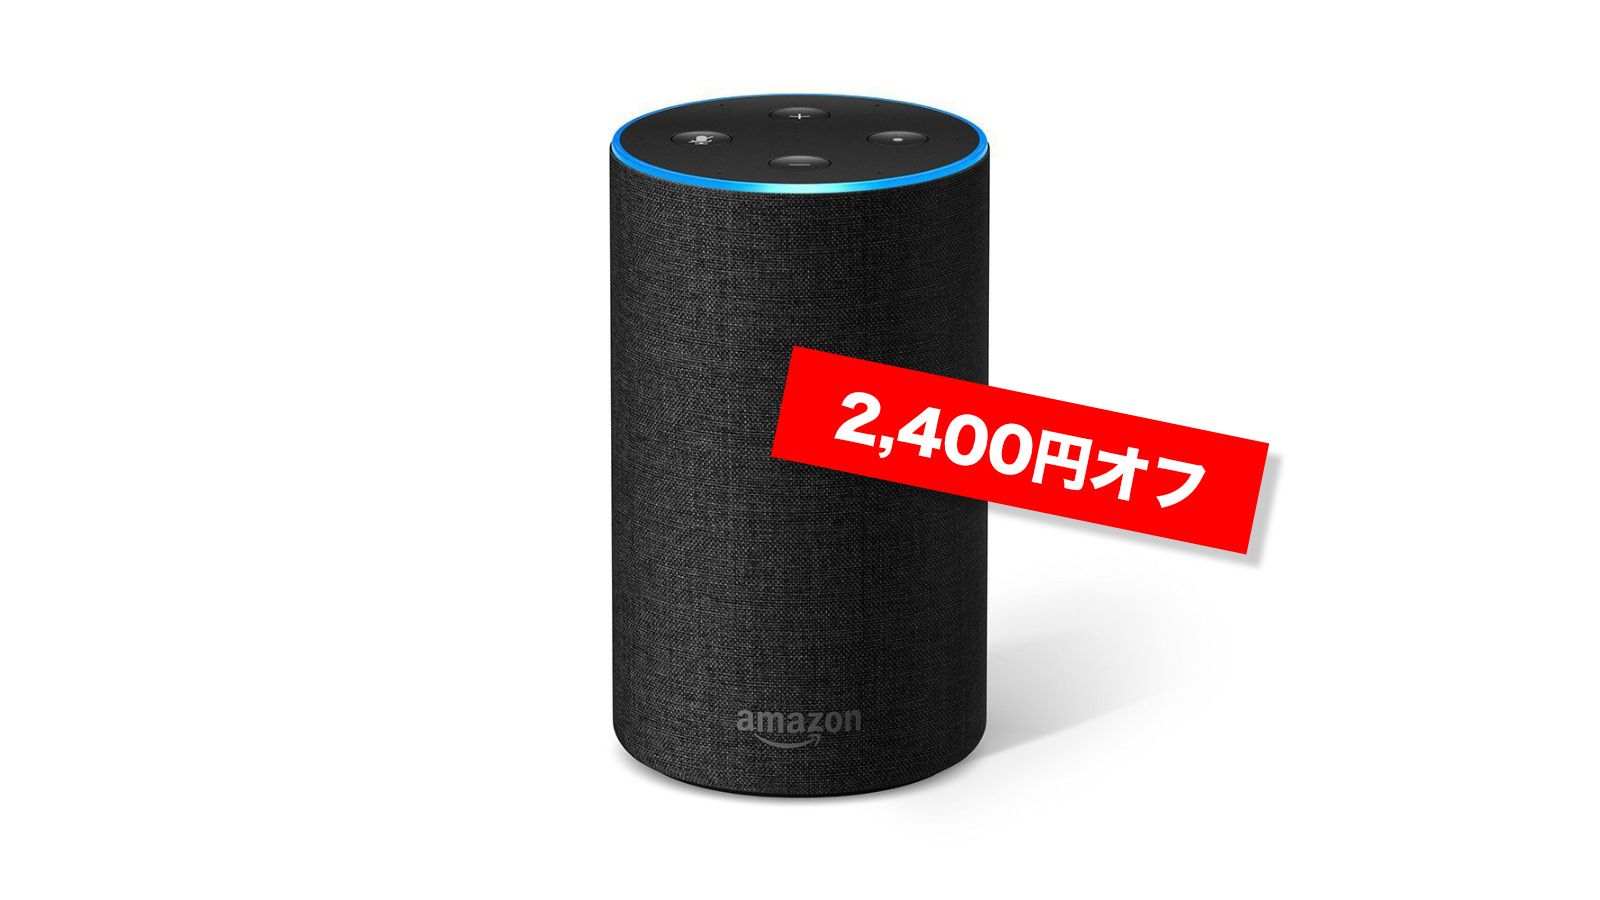 Amazon Echo 2400yen off